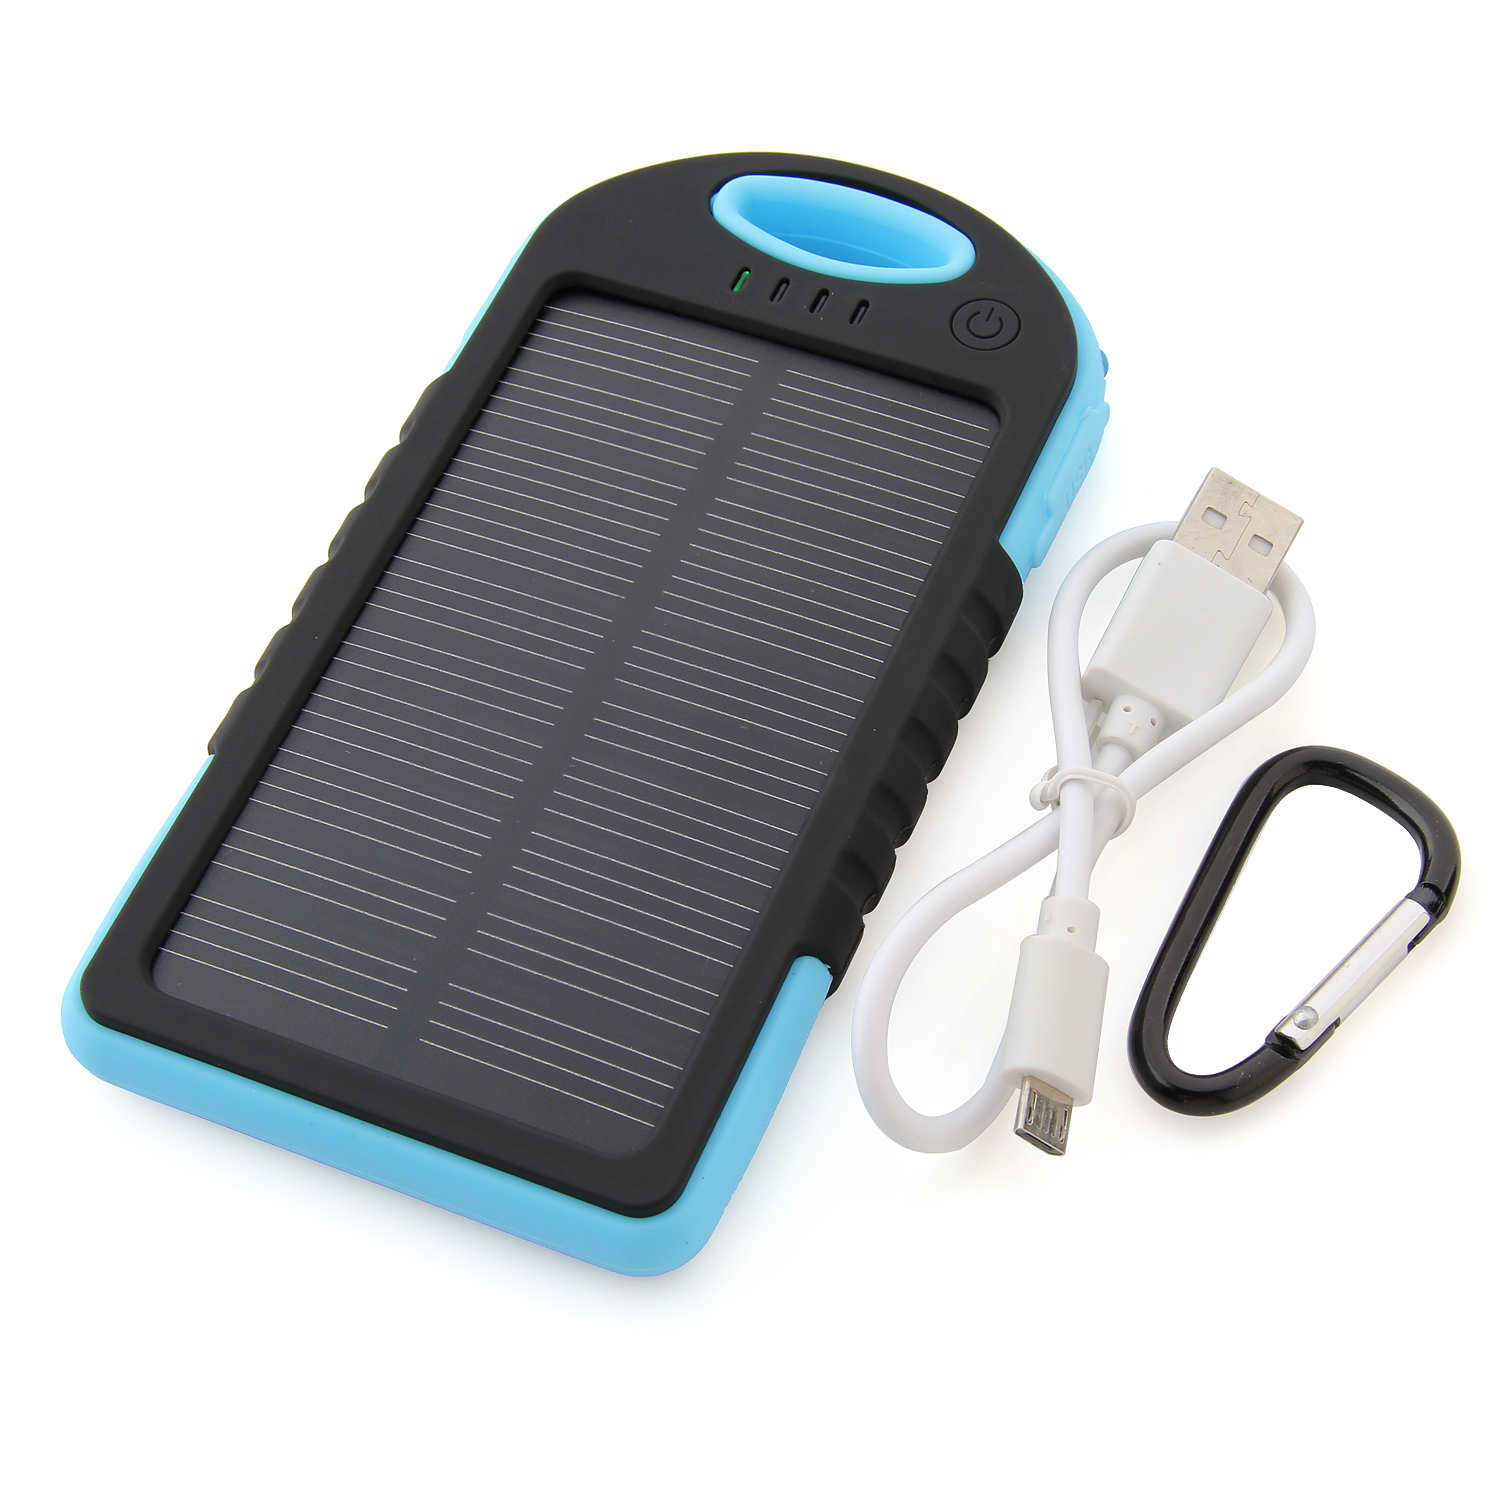 5000mAh Waterproof USB Solar Charger Power Bank Shakeproof Dust Proof Black&Blue